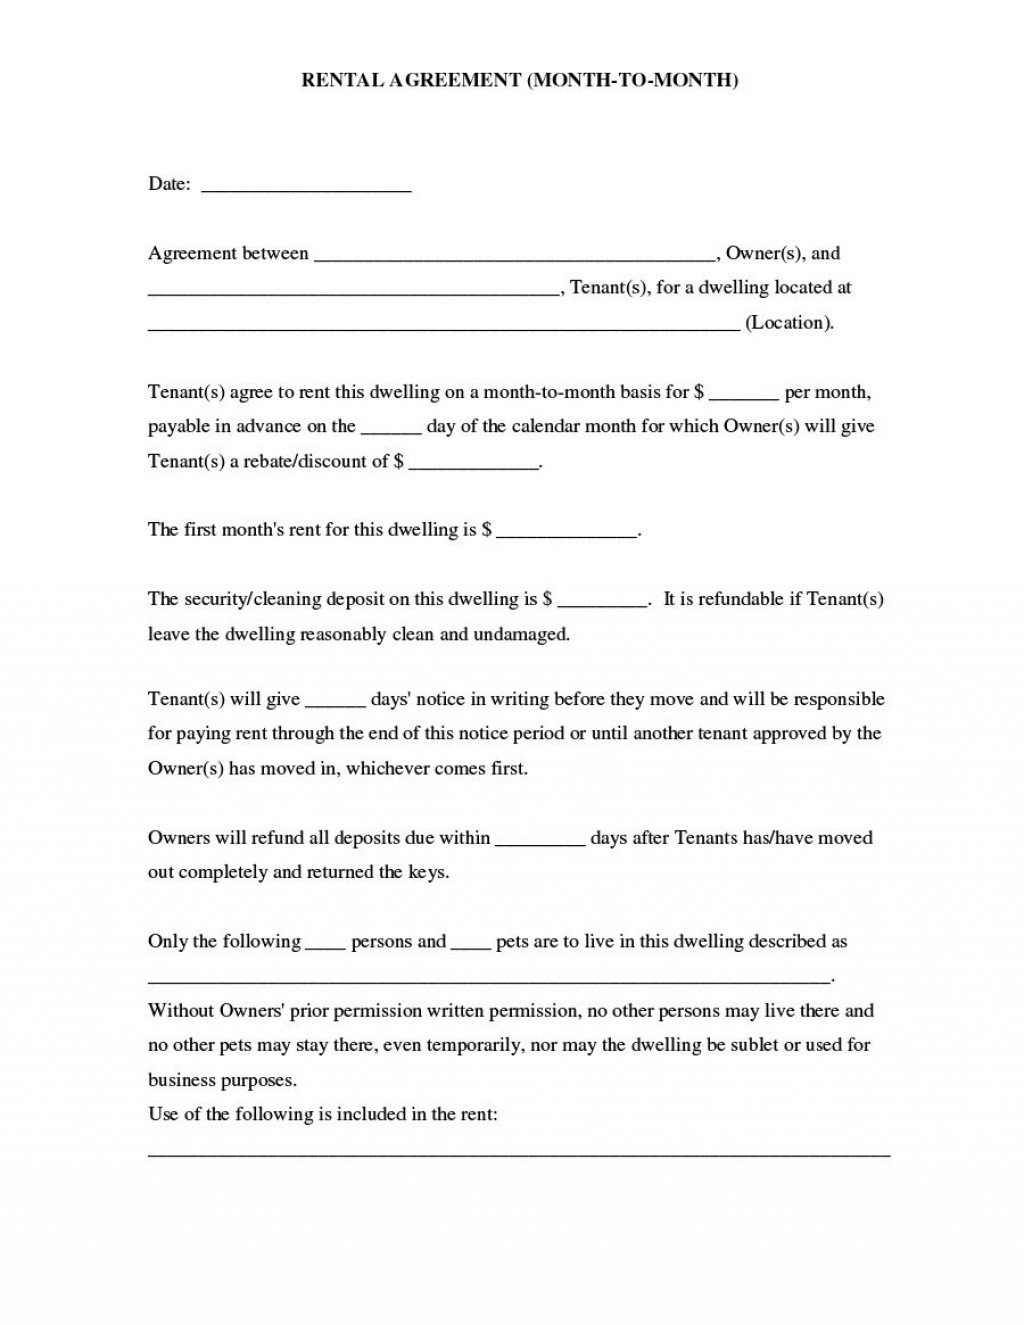 003 Best Room Rental Agreement Template Uk Free High Resolution  Word DocLarge